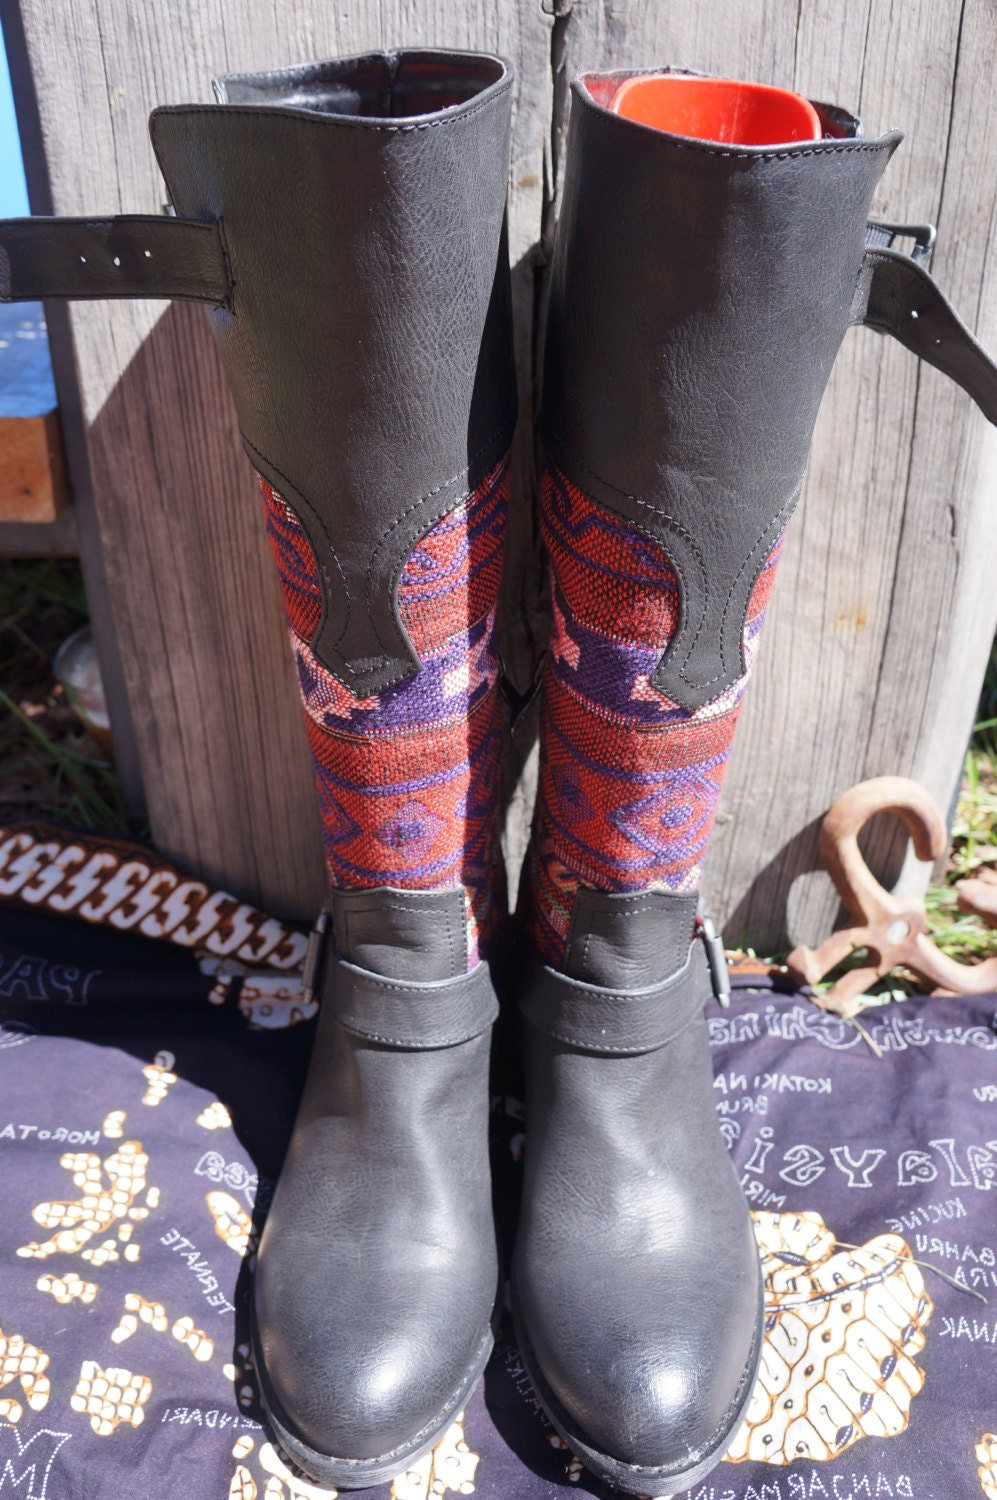 90s vegan black and tapestry western style biker boots